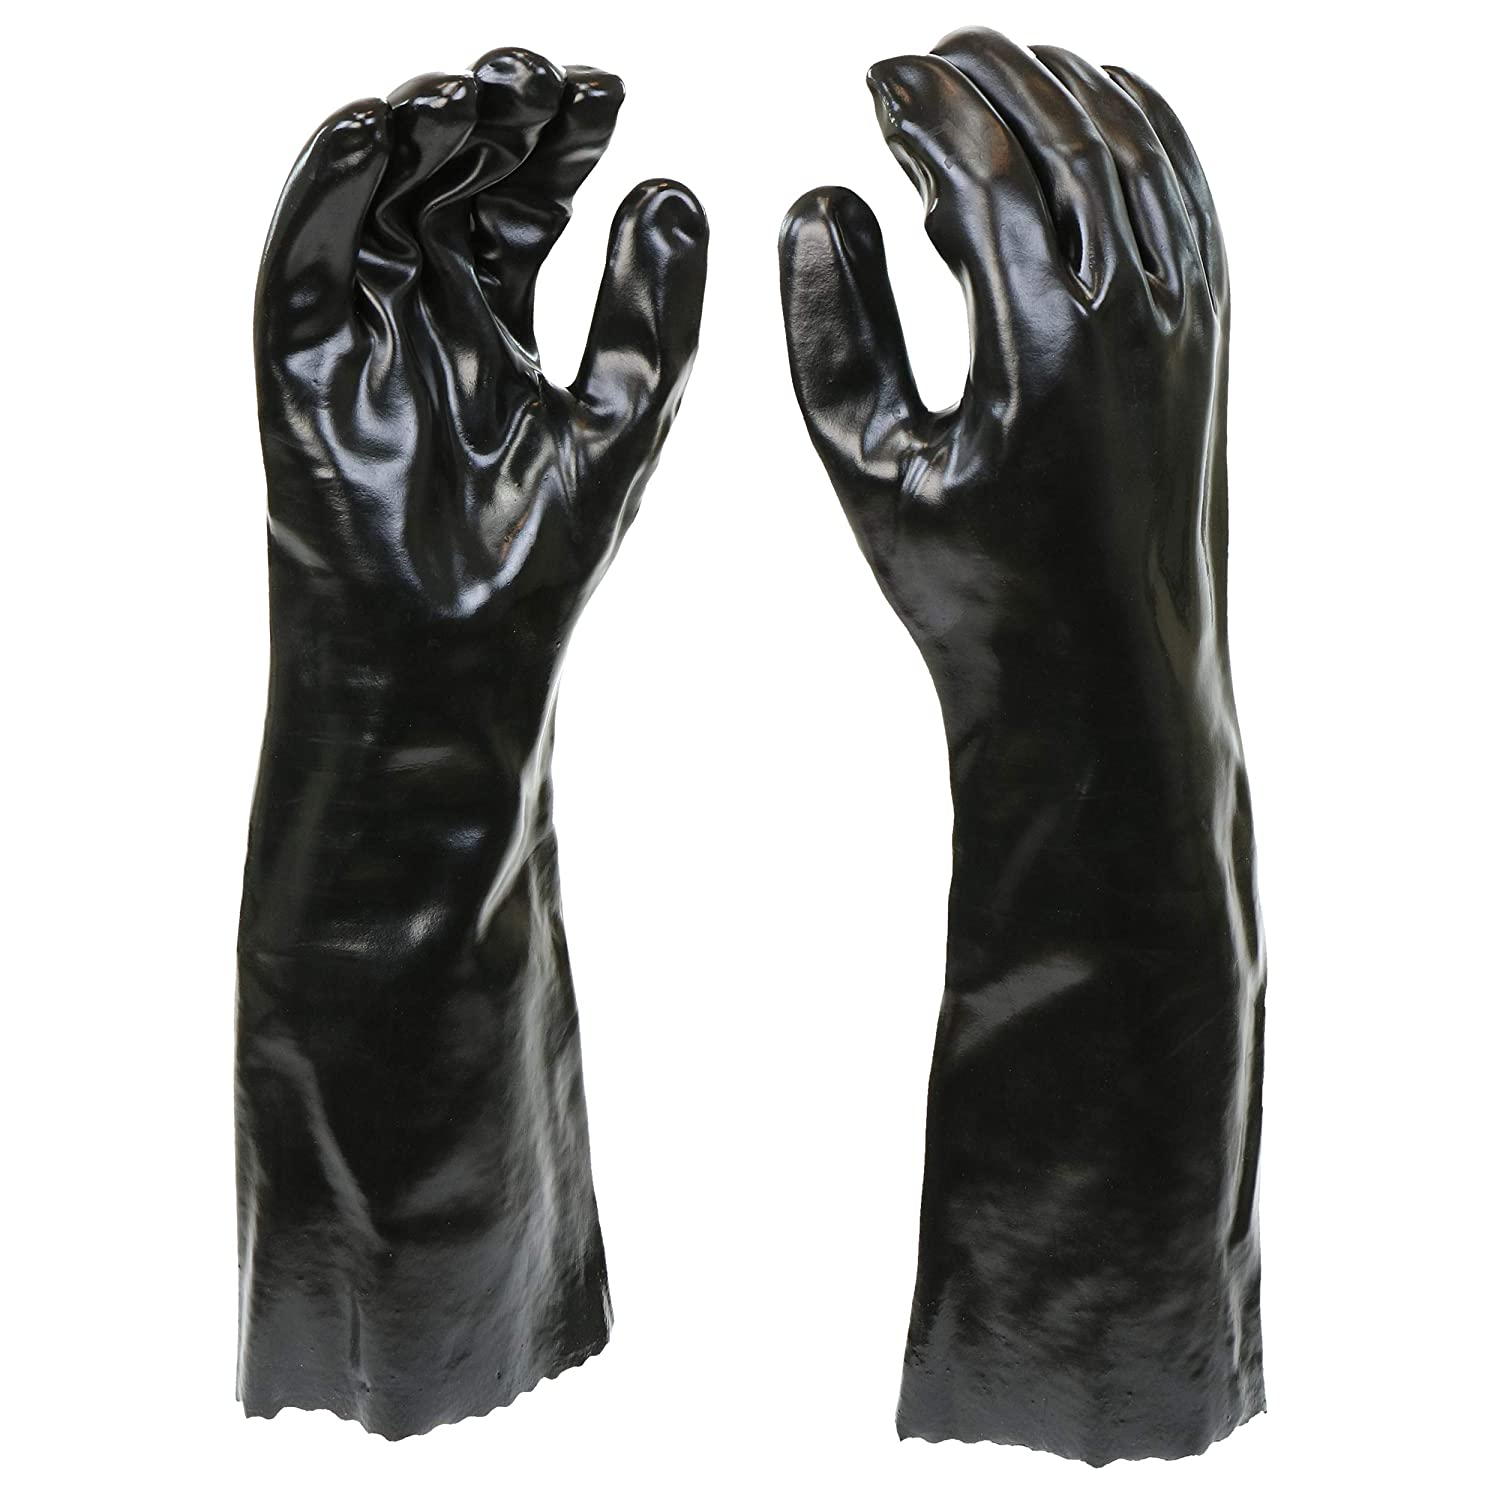 """West Chester 12018-L 12018 Chemical Resistant PVC Coated Work Gloves: 18"""" Length, One Size Fits Most, 1 Pair"""